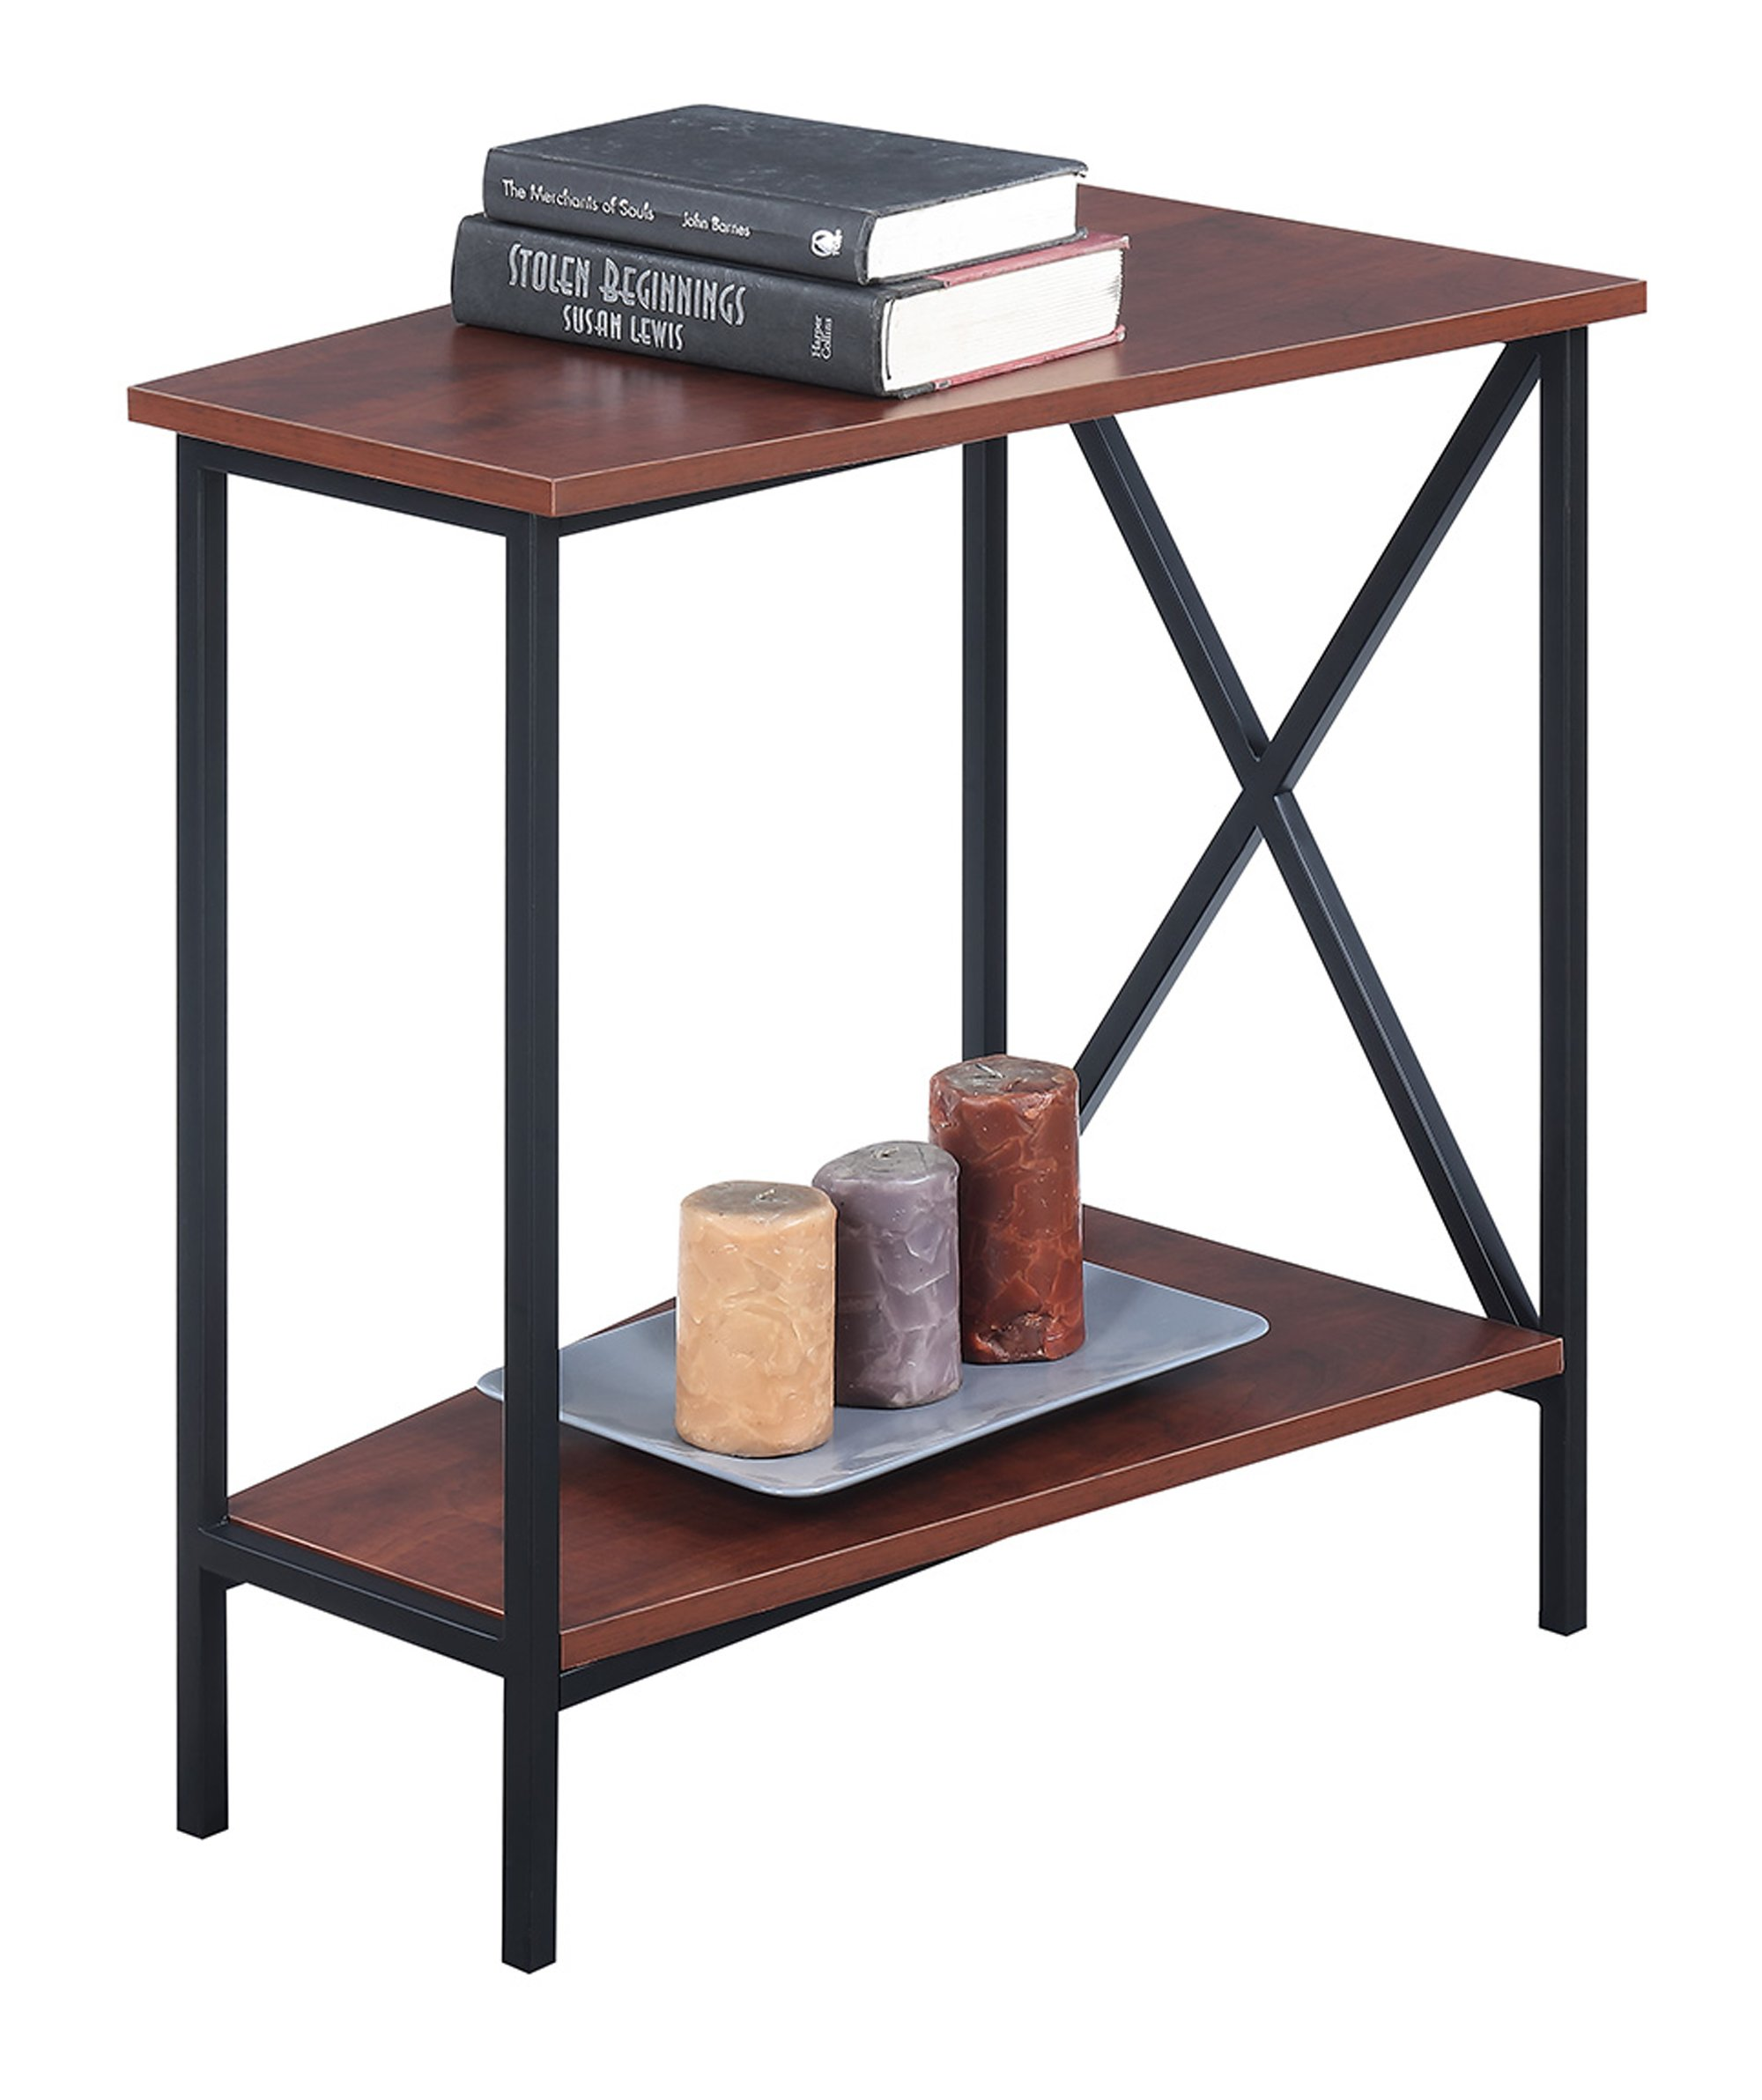 Convenience Concepts Tucson Wedge End Table, Black / Cherry by Convenience Concepts Tucson Wedge End Table, Black / Cherry (Image #2)